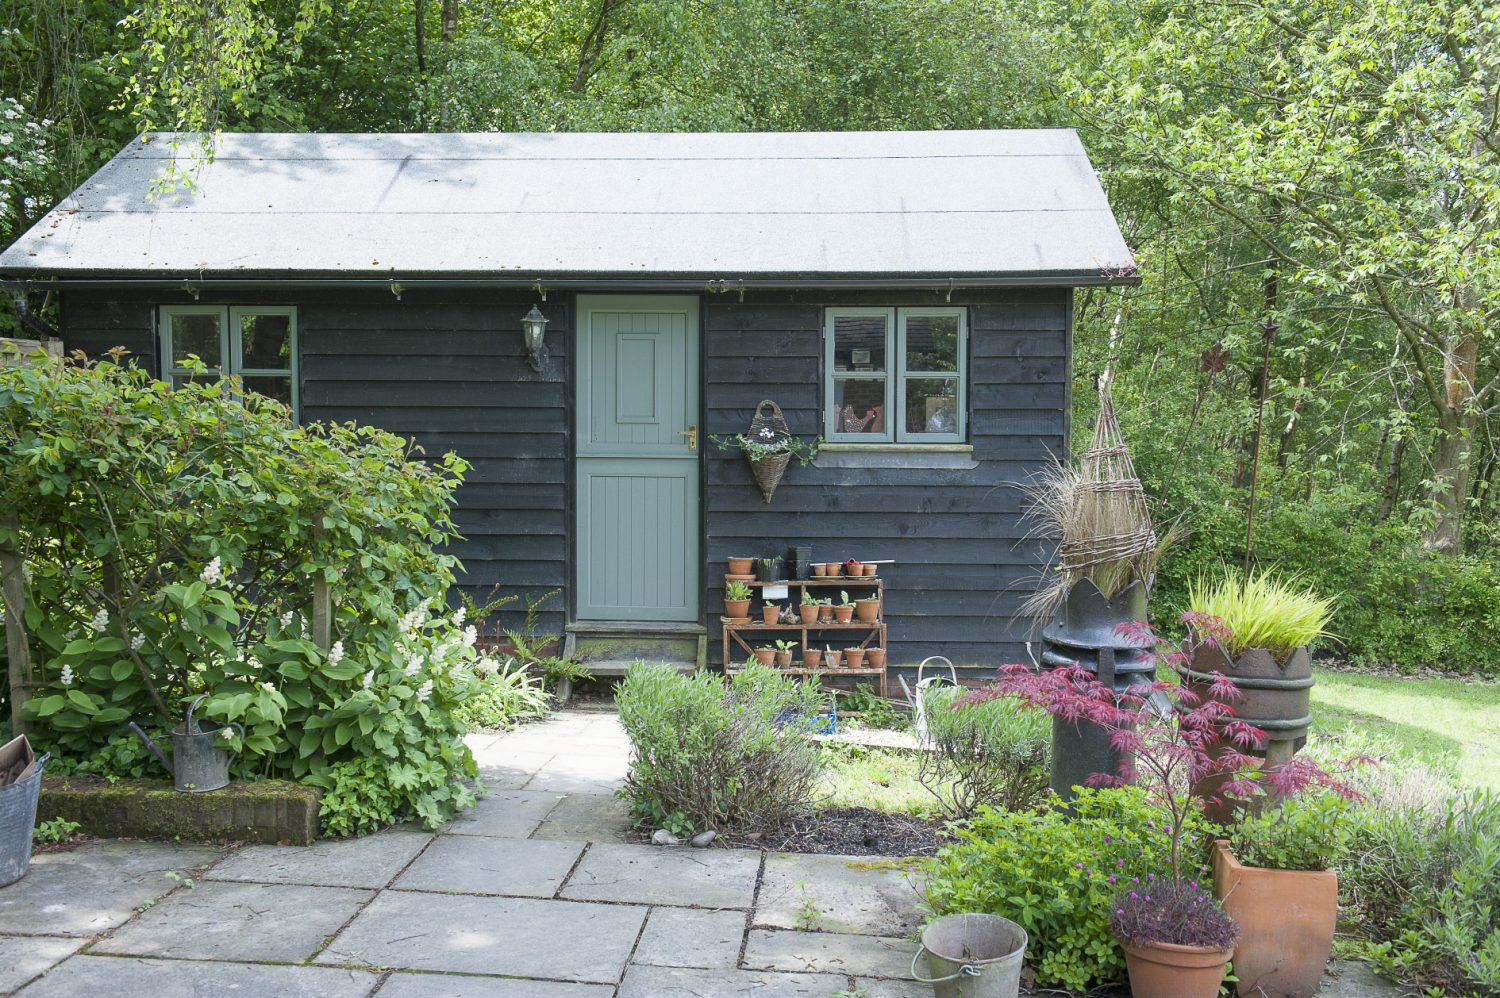 Rob's office is a handsome timber clad building, painted dark brown, which looks very effective amid the creams and greens of the surrounding plants